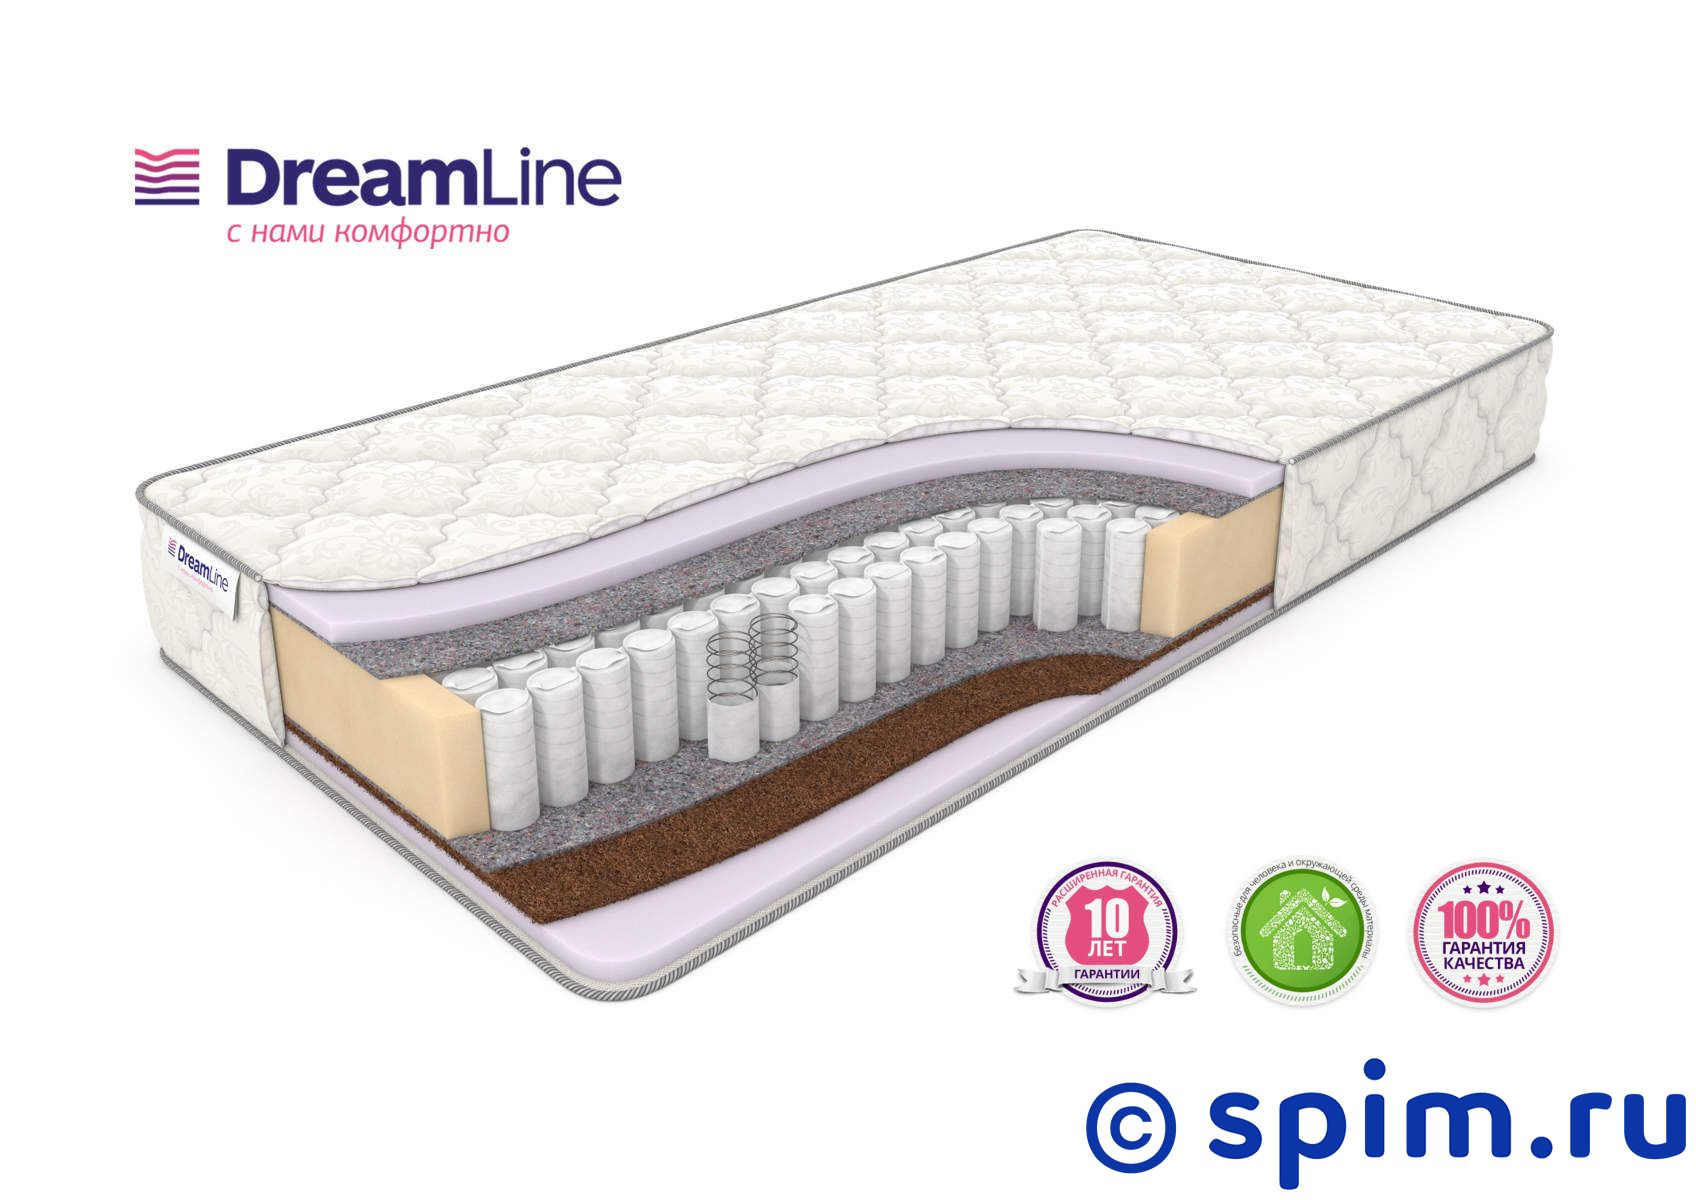 Матрас DreamLine Kombi 3 Tfk 180х195 см матрас dreamline sleepdream medium tfk 140х200 см